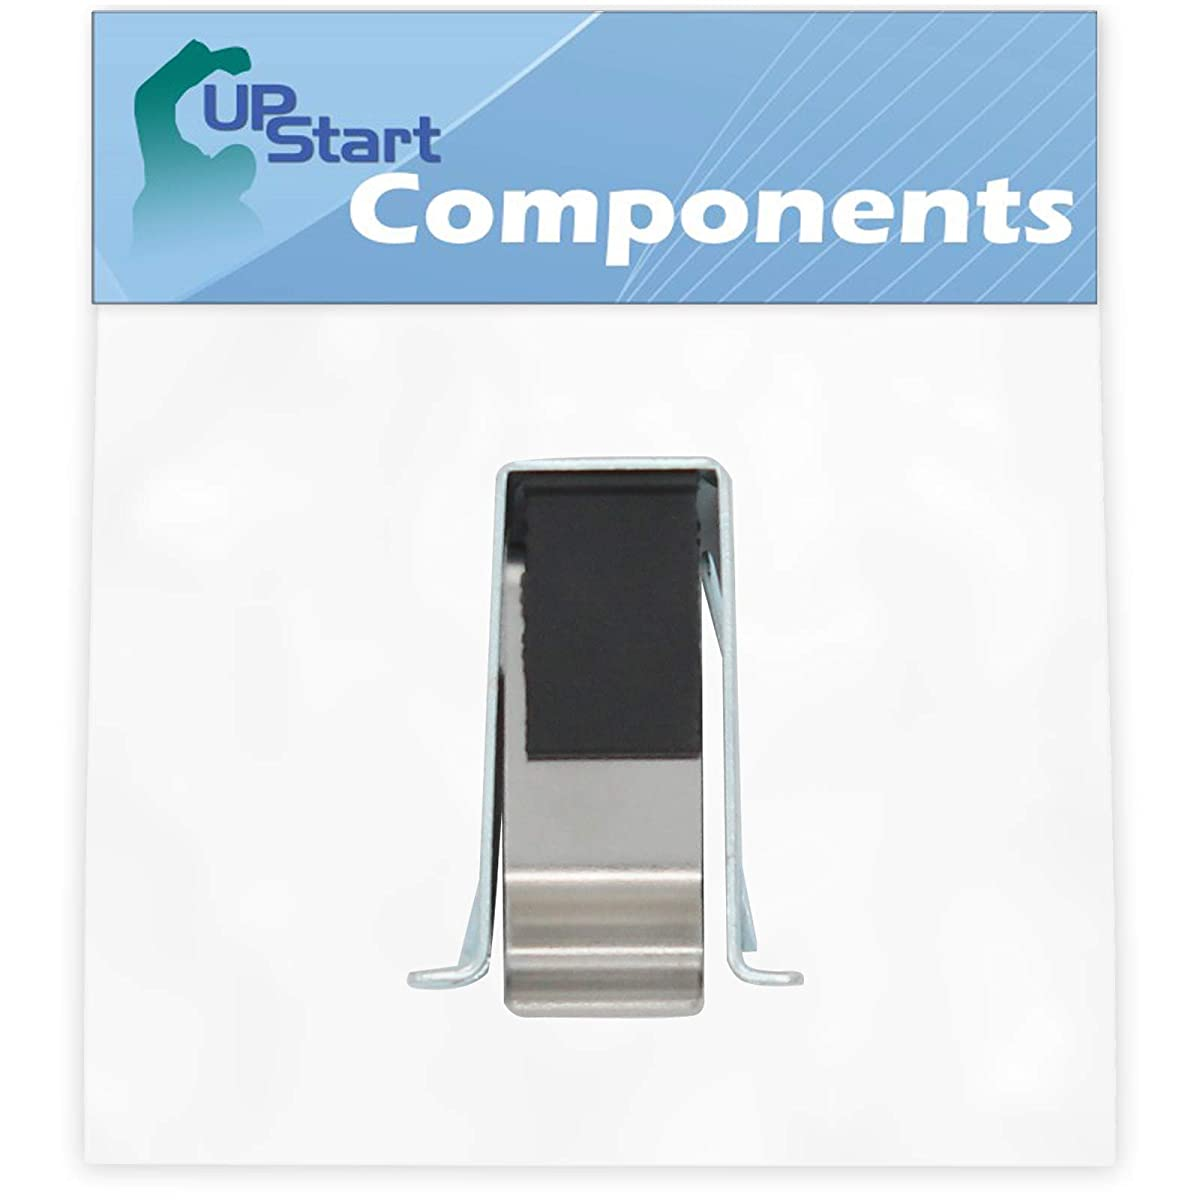 W10111905 Dryer Door Catch Replacement for Maytag MGDB850WR0 Dryer - Compatible with WPW10111905 Door Catch - UpStart Components Brand